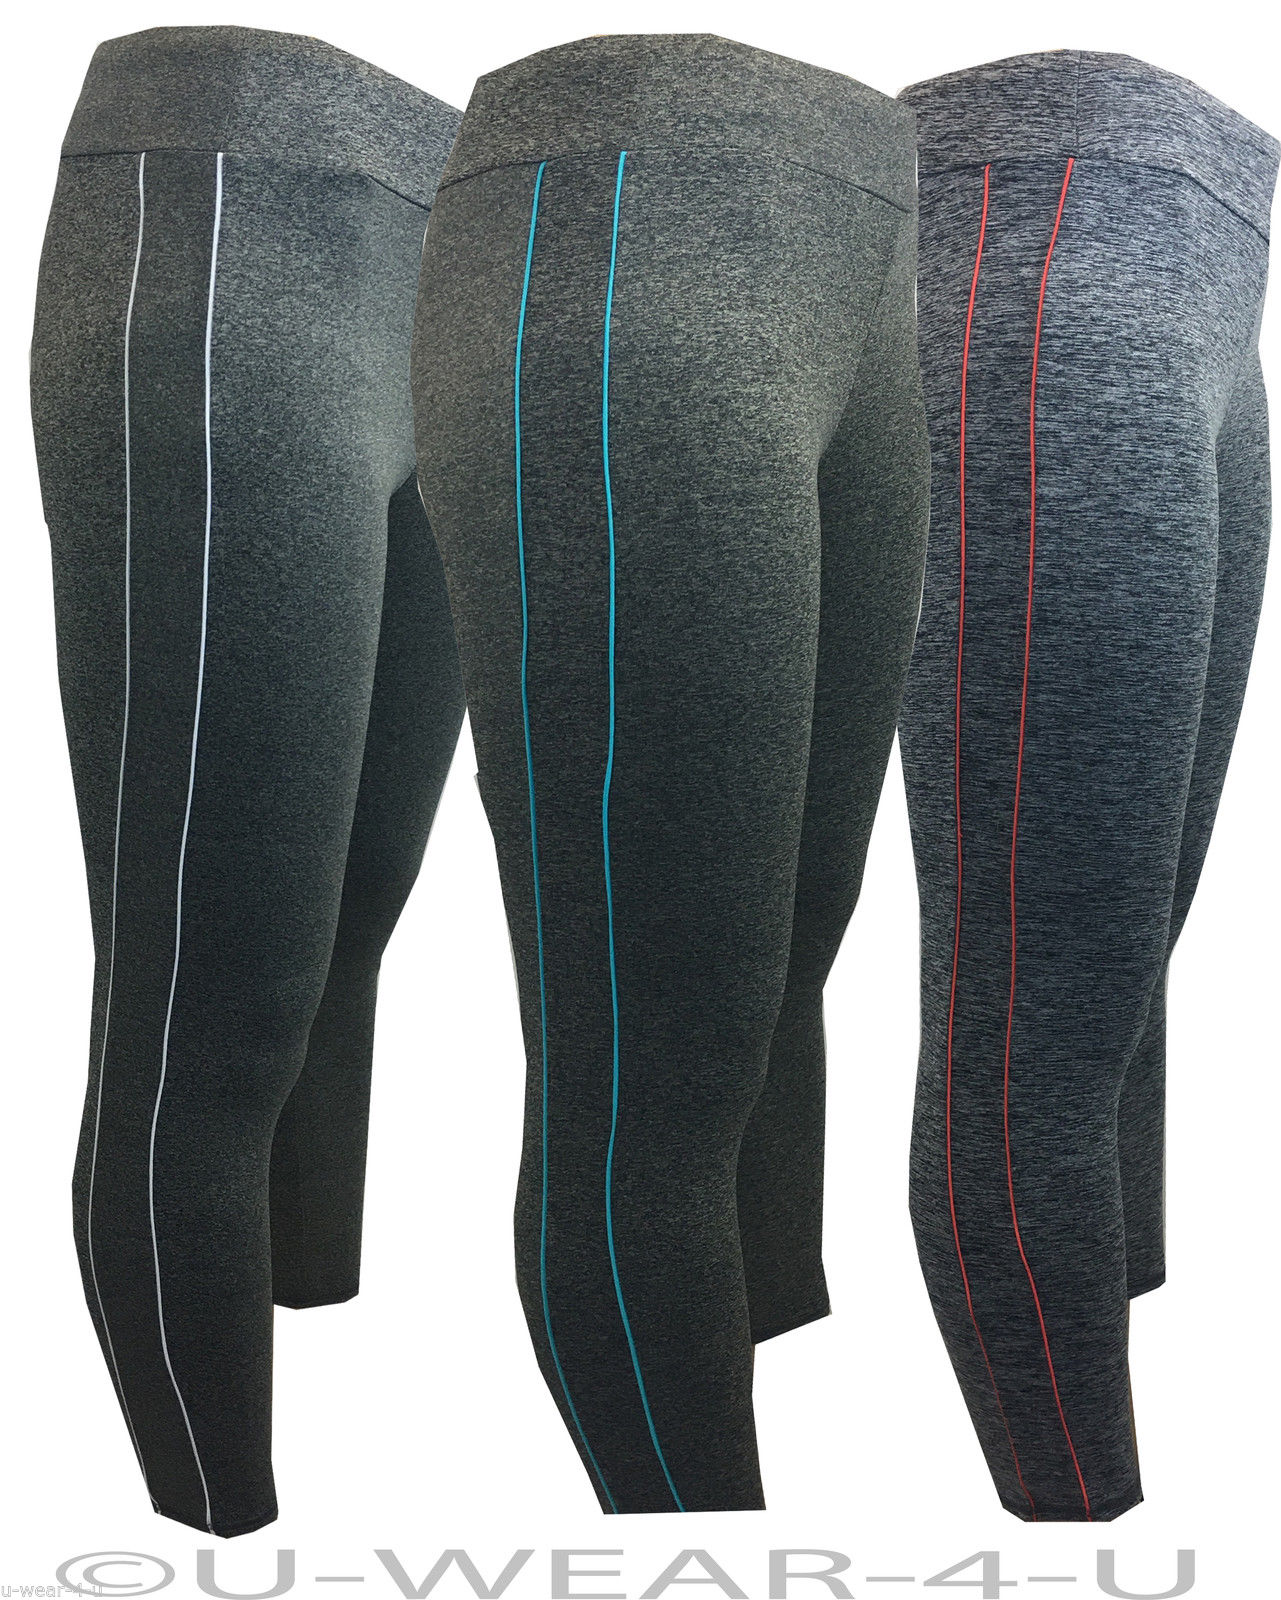 LADIES MARKS AND SPENCER SPORTS GYM WORKOUT LEGGING ACTIVE FIT JOGGER PANTS M&S